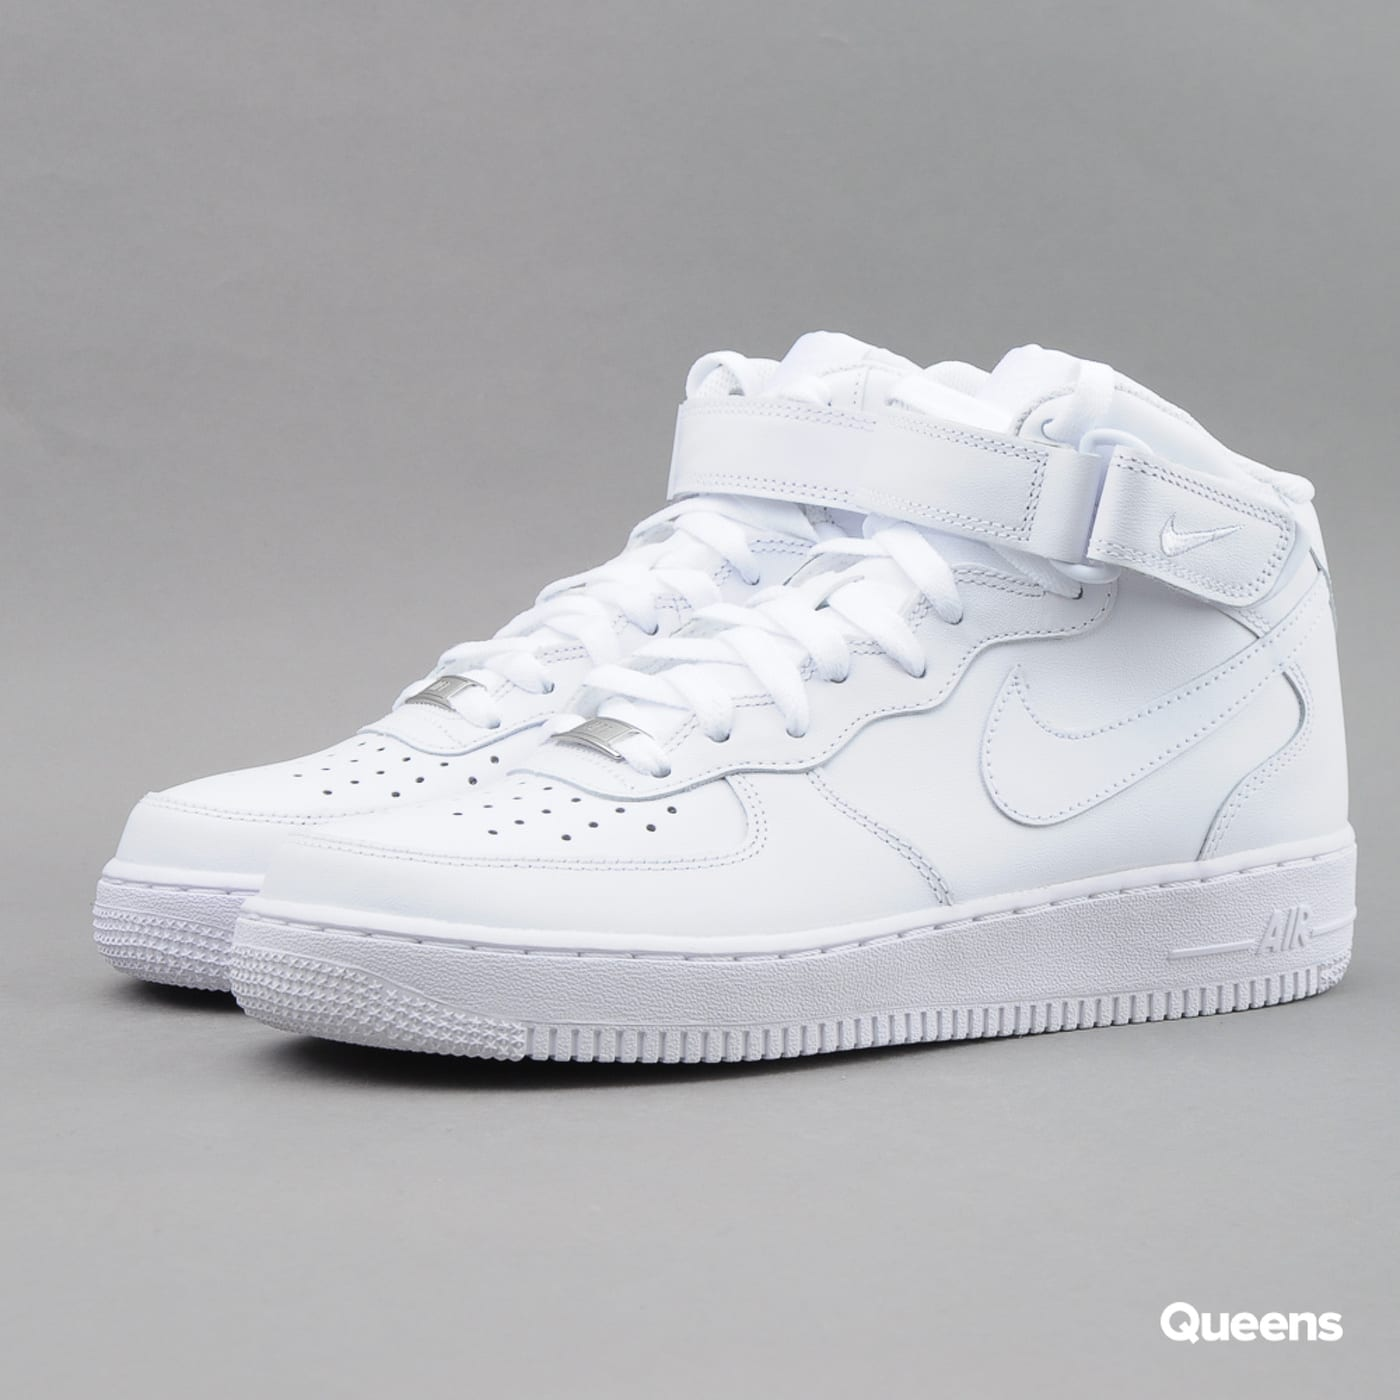 Obuv Nike Air Force 1 Mid 07 (315123-111)– Queens 💚 ad01f2fc568